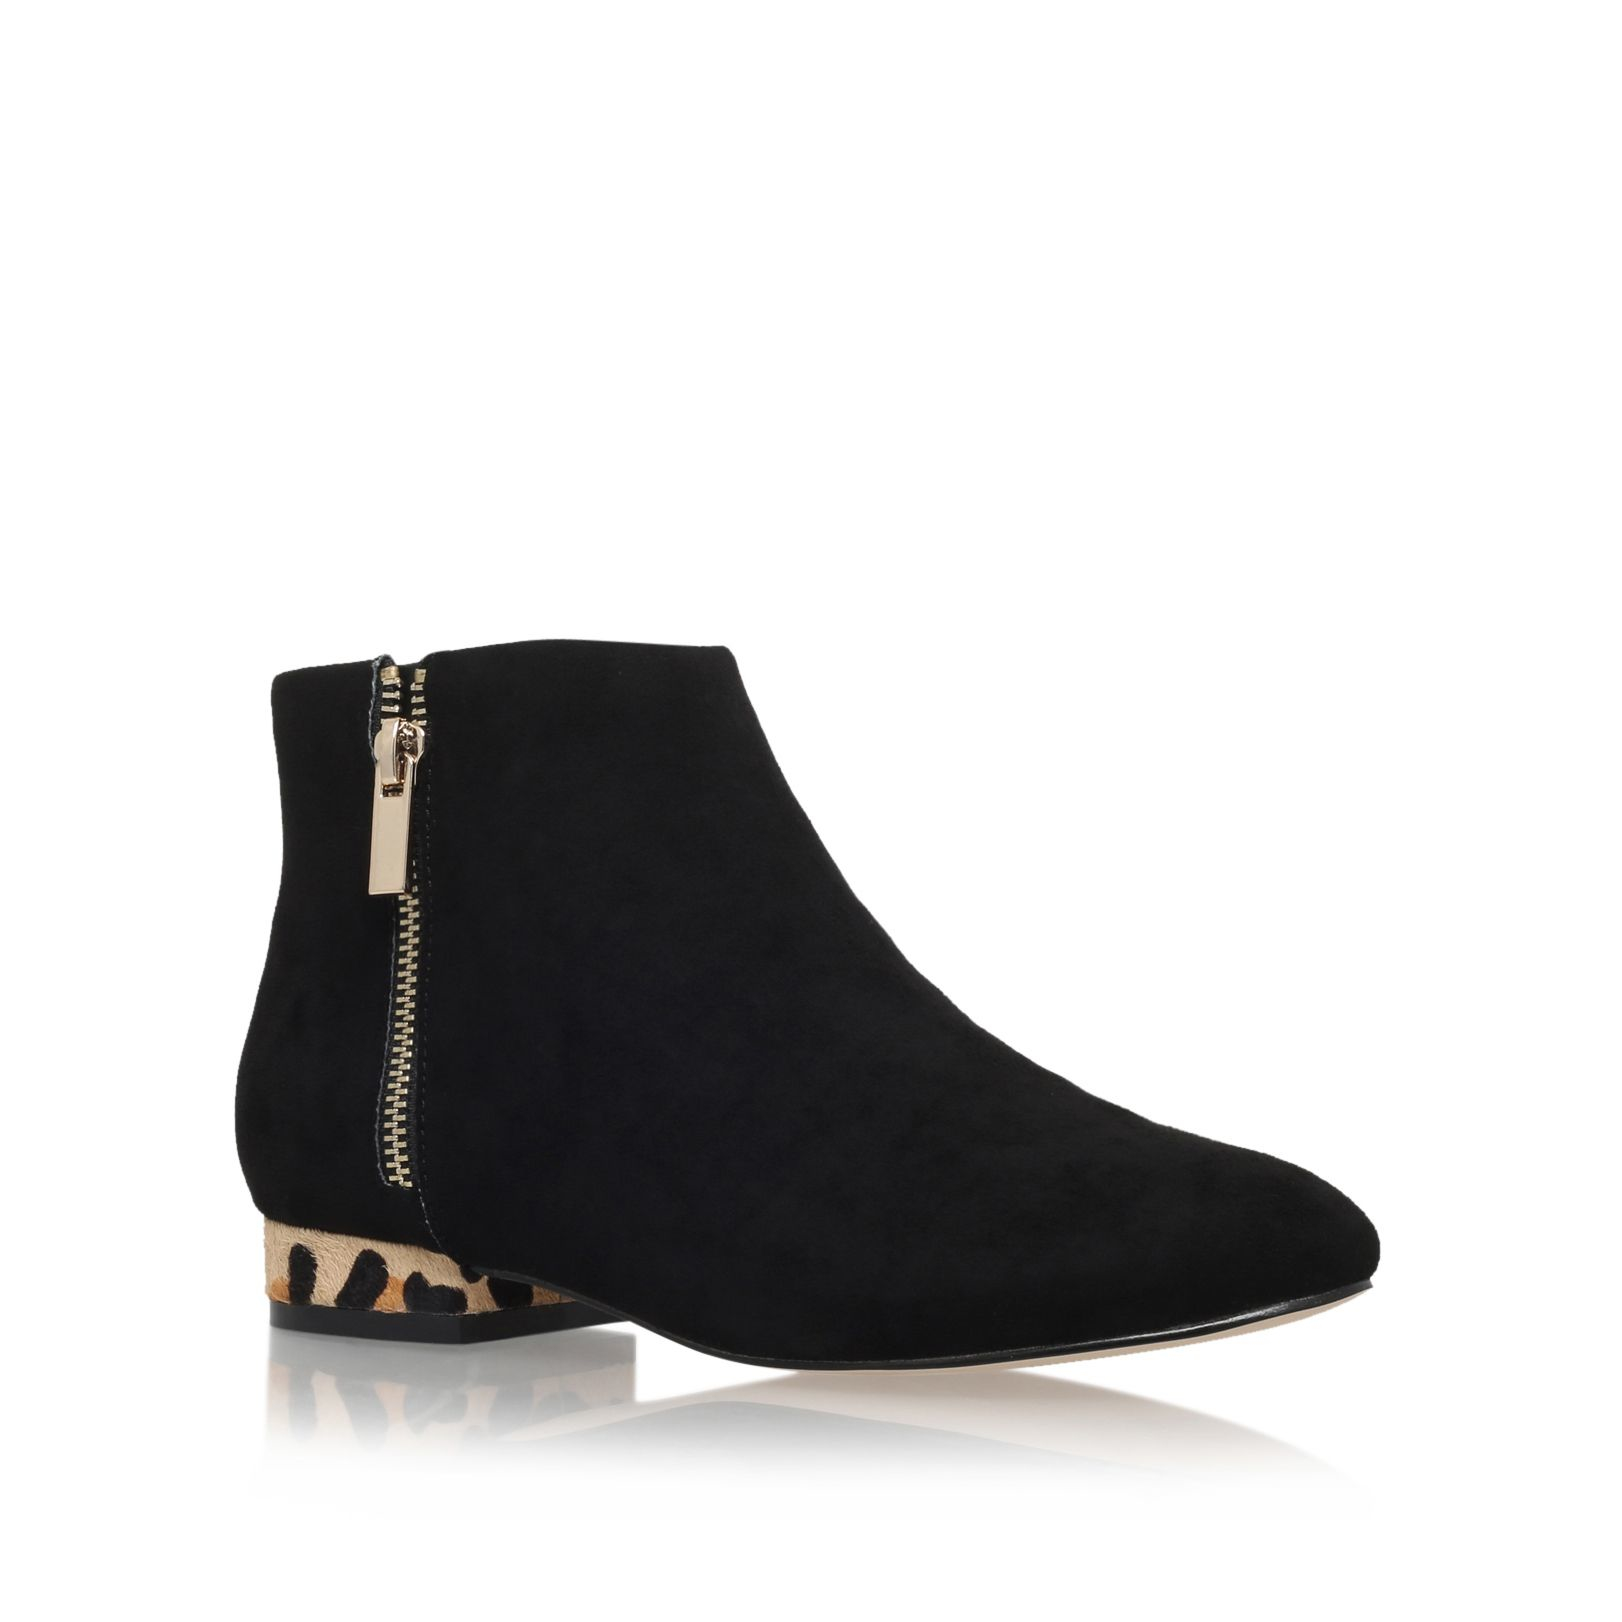 Try a pair of ankle boots with a wedge heel for an ultra-chic look and a confident boost in height. Raise the style stakes with ankle boots that boast a pointy heel and add a ton of drama to any outfit.